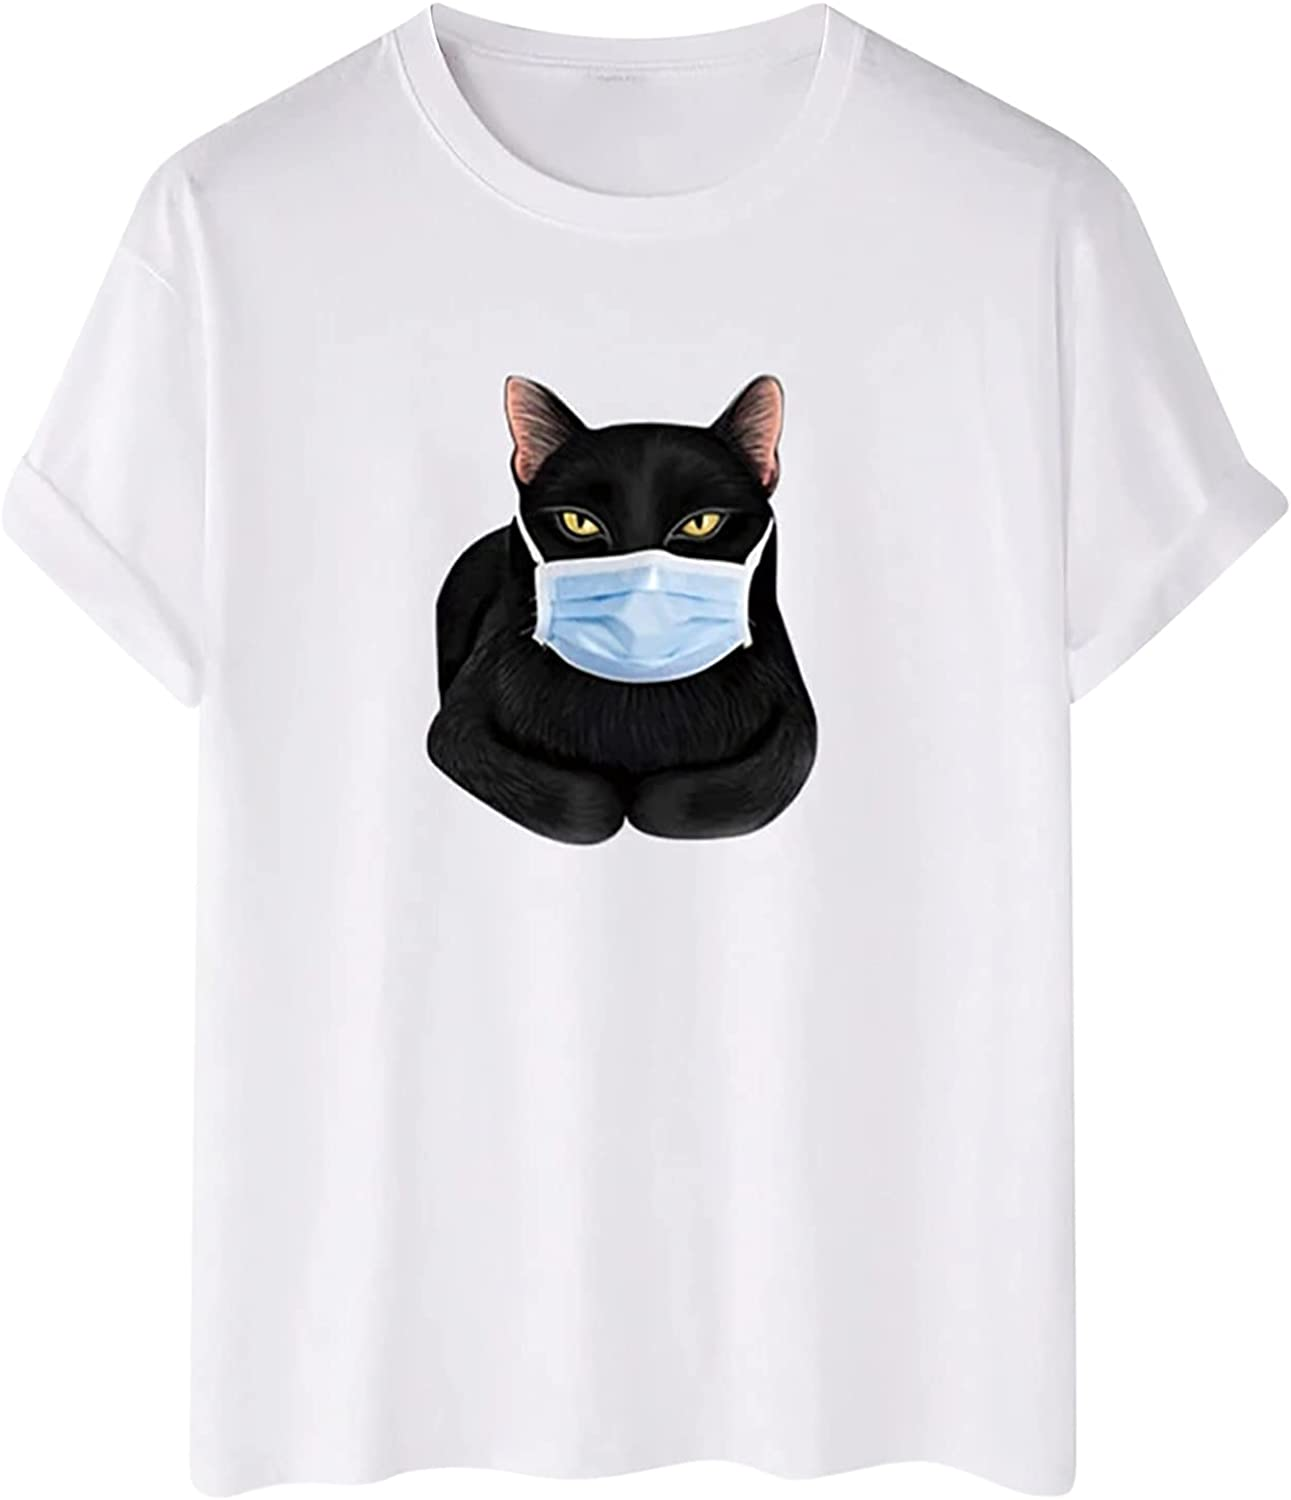 Men's Daily Shirt O-Neck Short Sleeve T Shirt Cat with Mask Print Tunic Summer Casual Loose Blouse Fit Tee Top